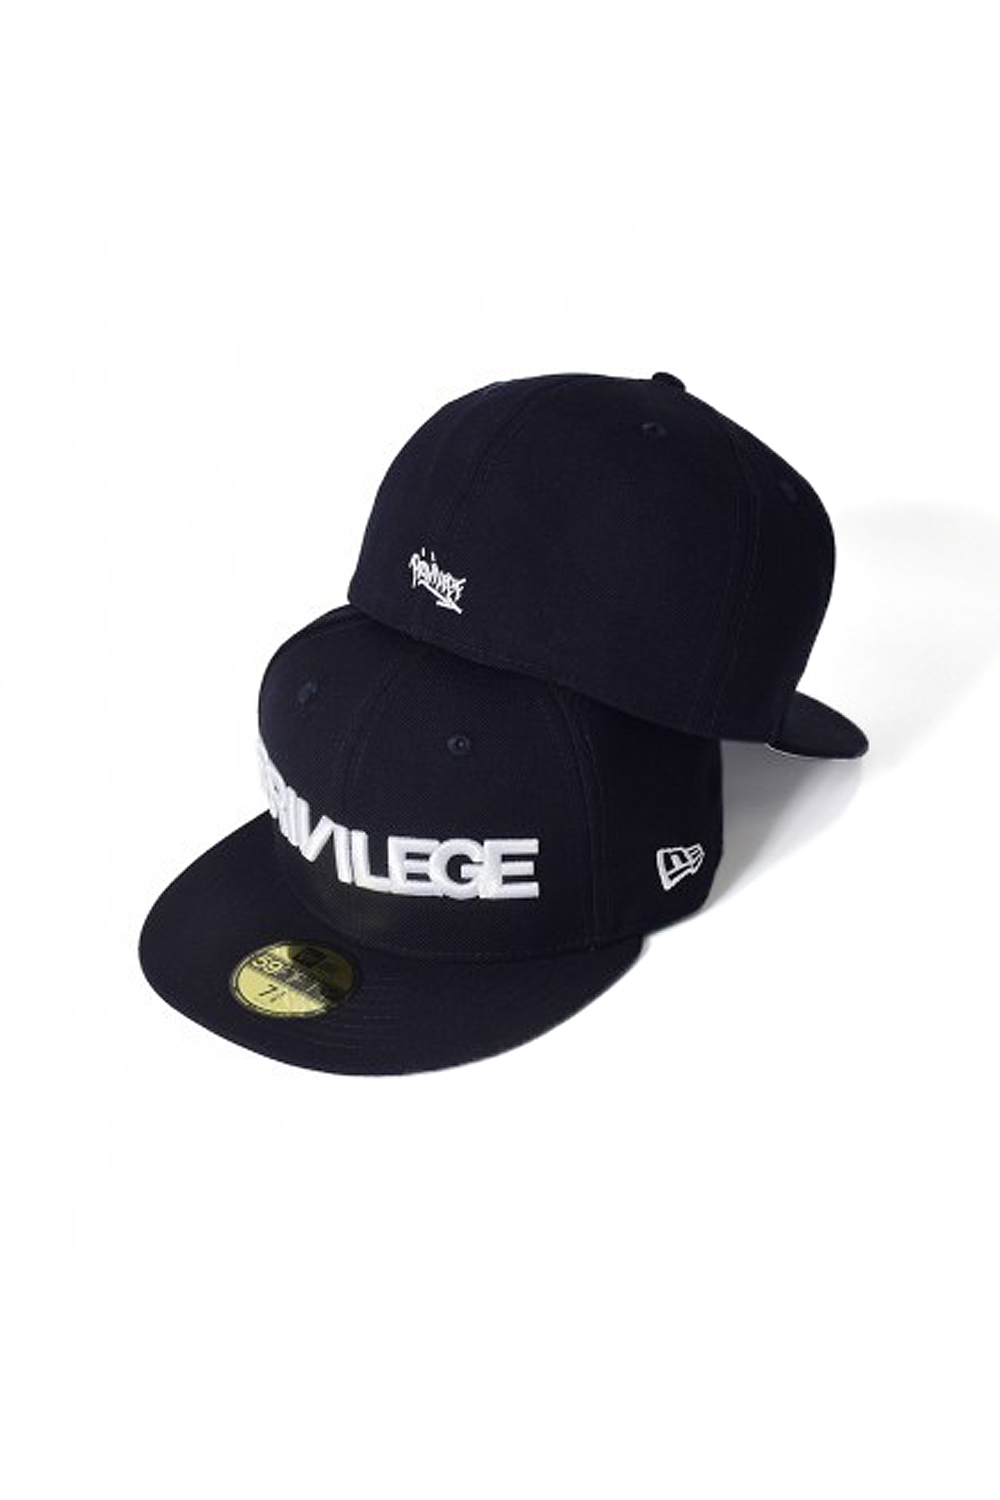 画像1: 【PRIVILEGE】PRIVILEGE NEWYORK × NEW ERA – CORE LOGO 9FIFTY SNAPBACK CAP